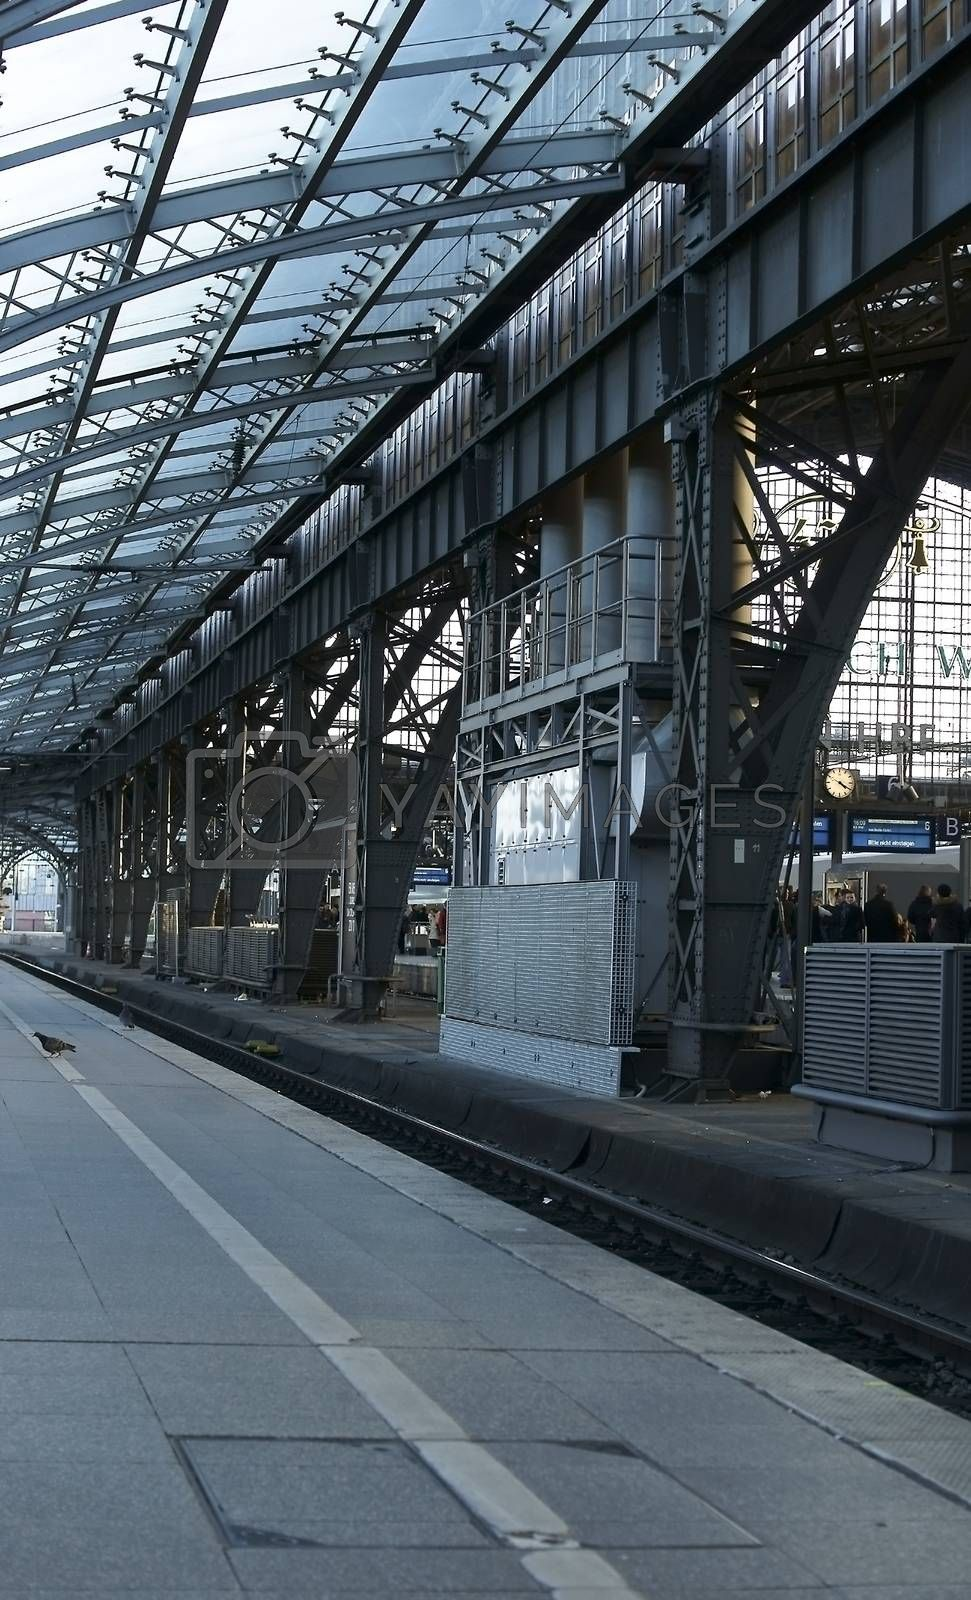 Cologne, Germany - February 02, 2014: The Indoors o a platform of the Cologne central station with a glass canopy on February 02, 2014 in Cologne.